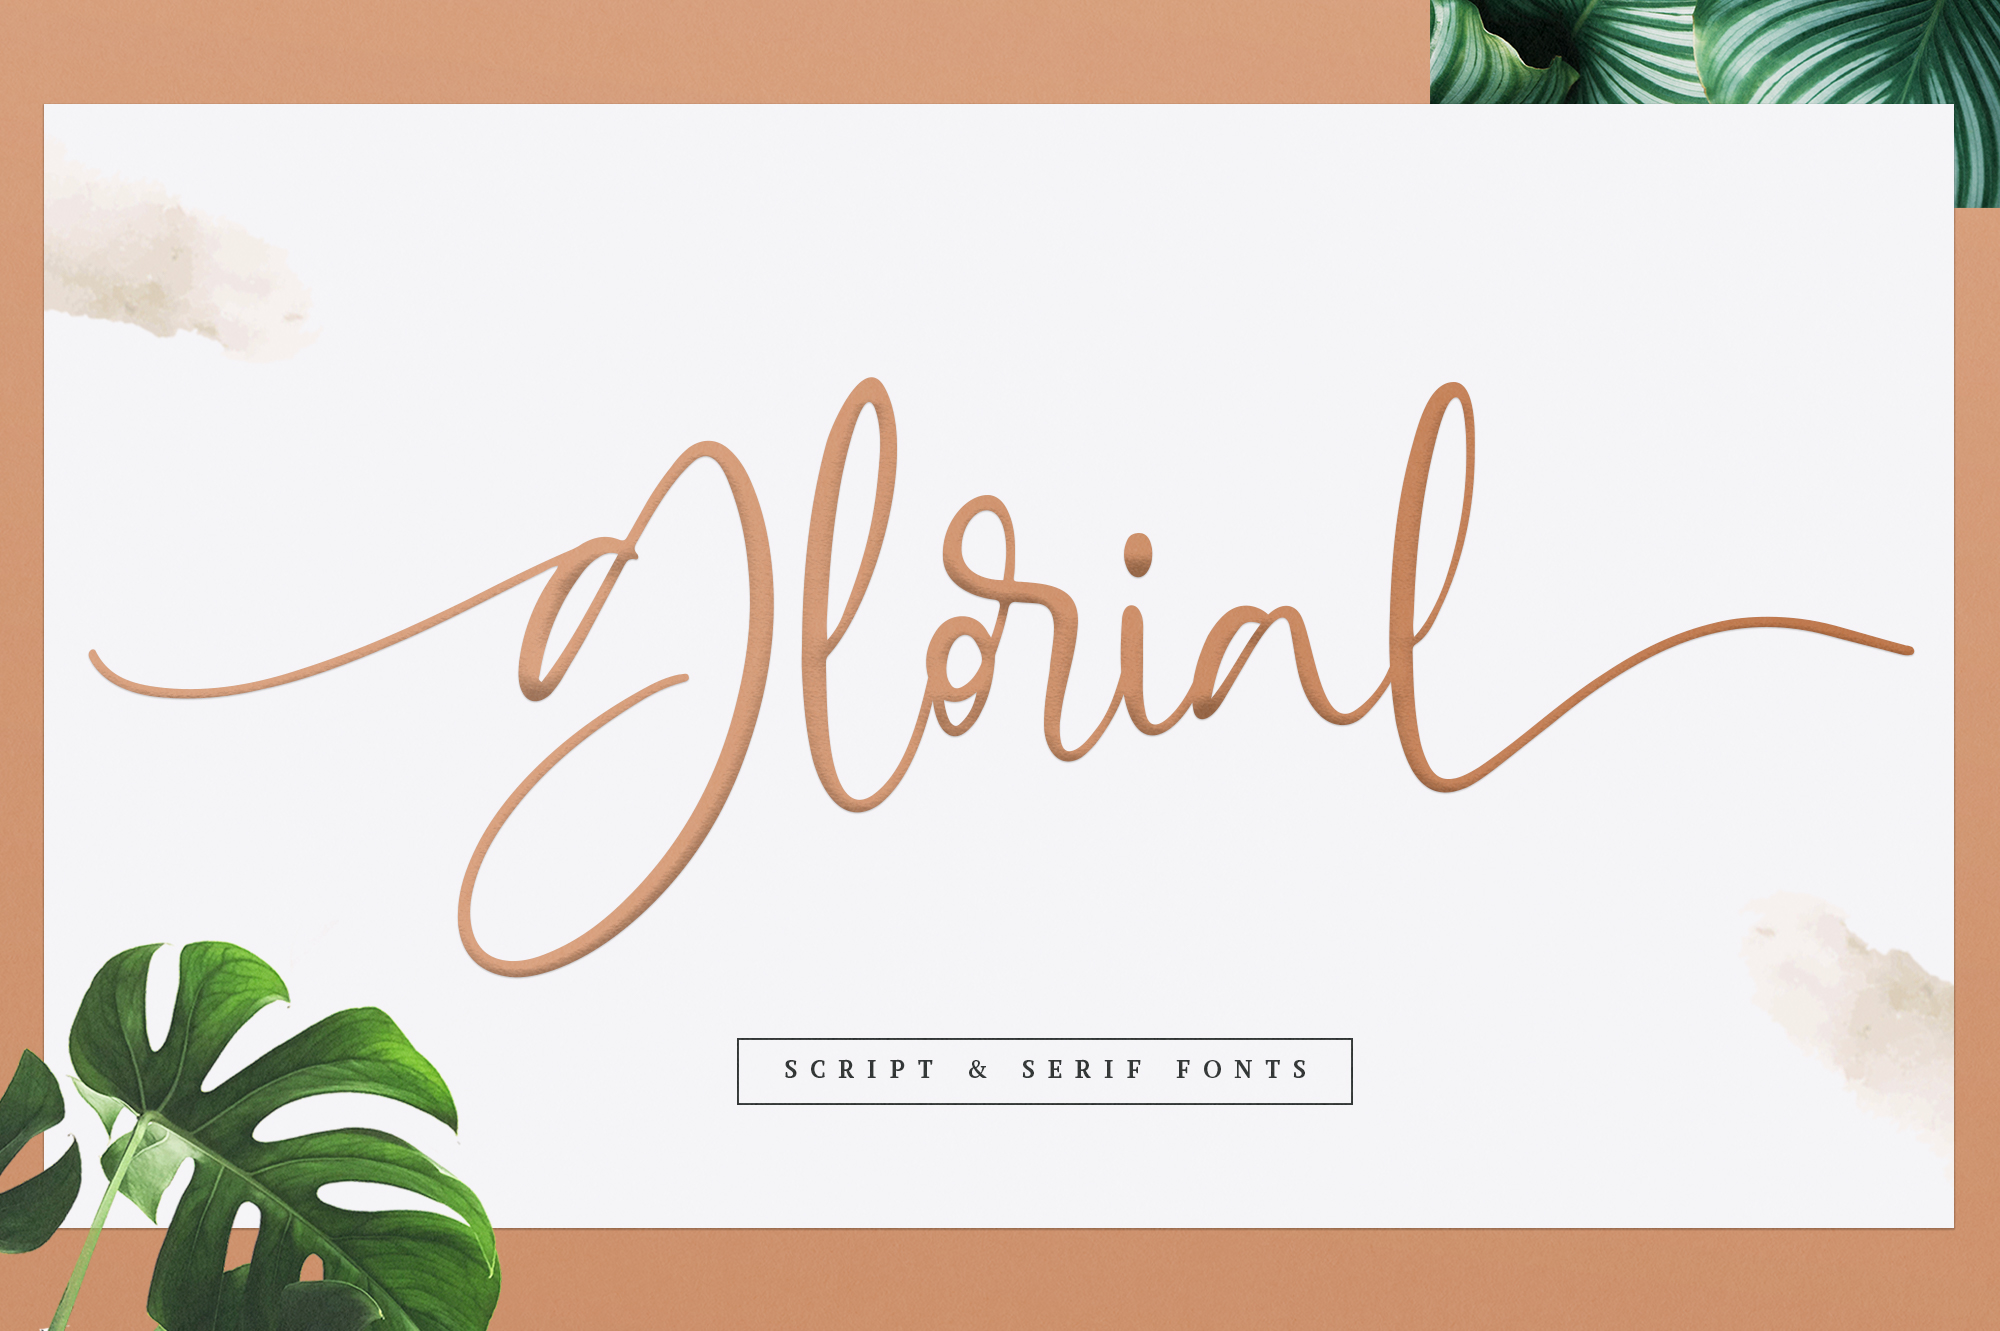 Download Free Glorial Duo Schriftarten Von Runsell Graphic Creative Fabrica for Cricut Explore, Silhouette and other cutting machines.